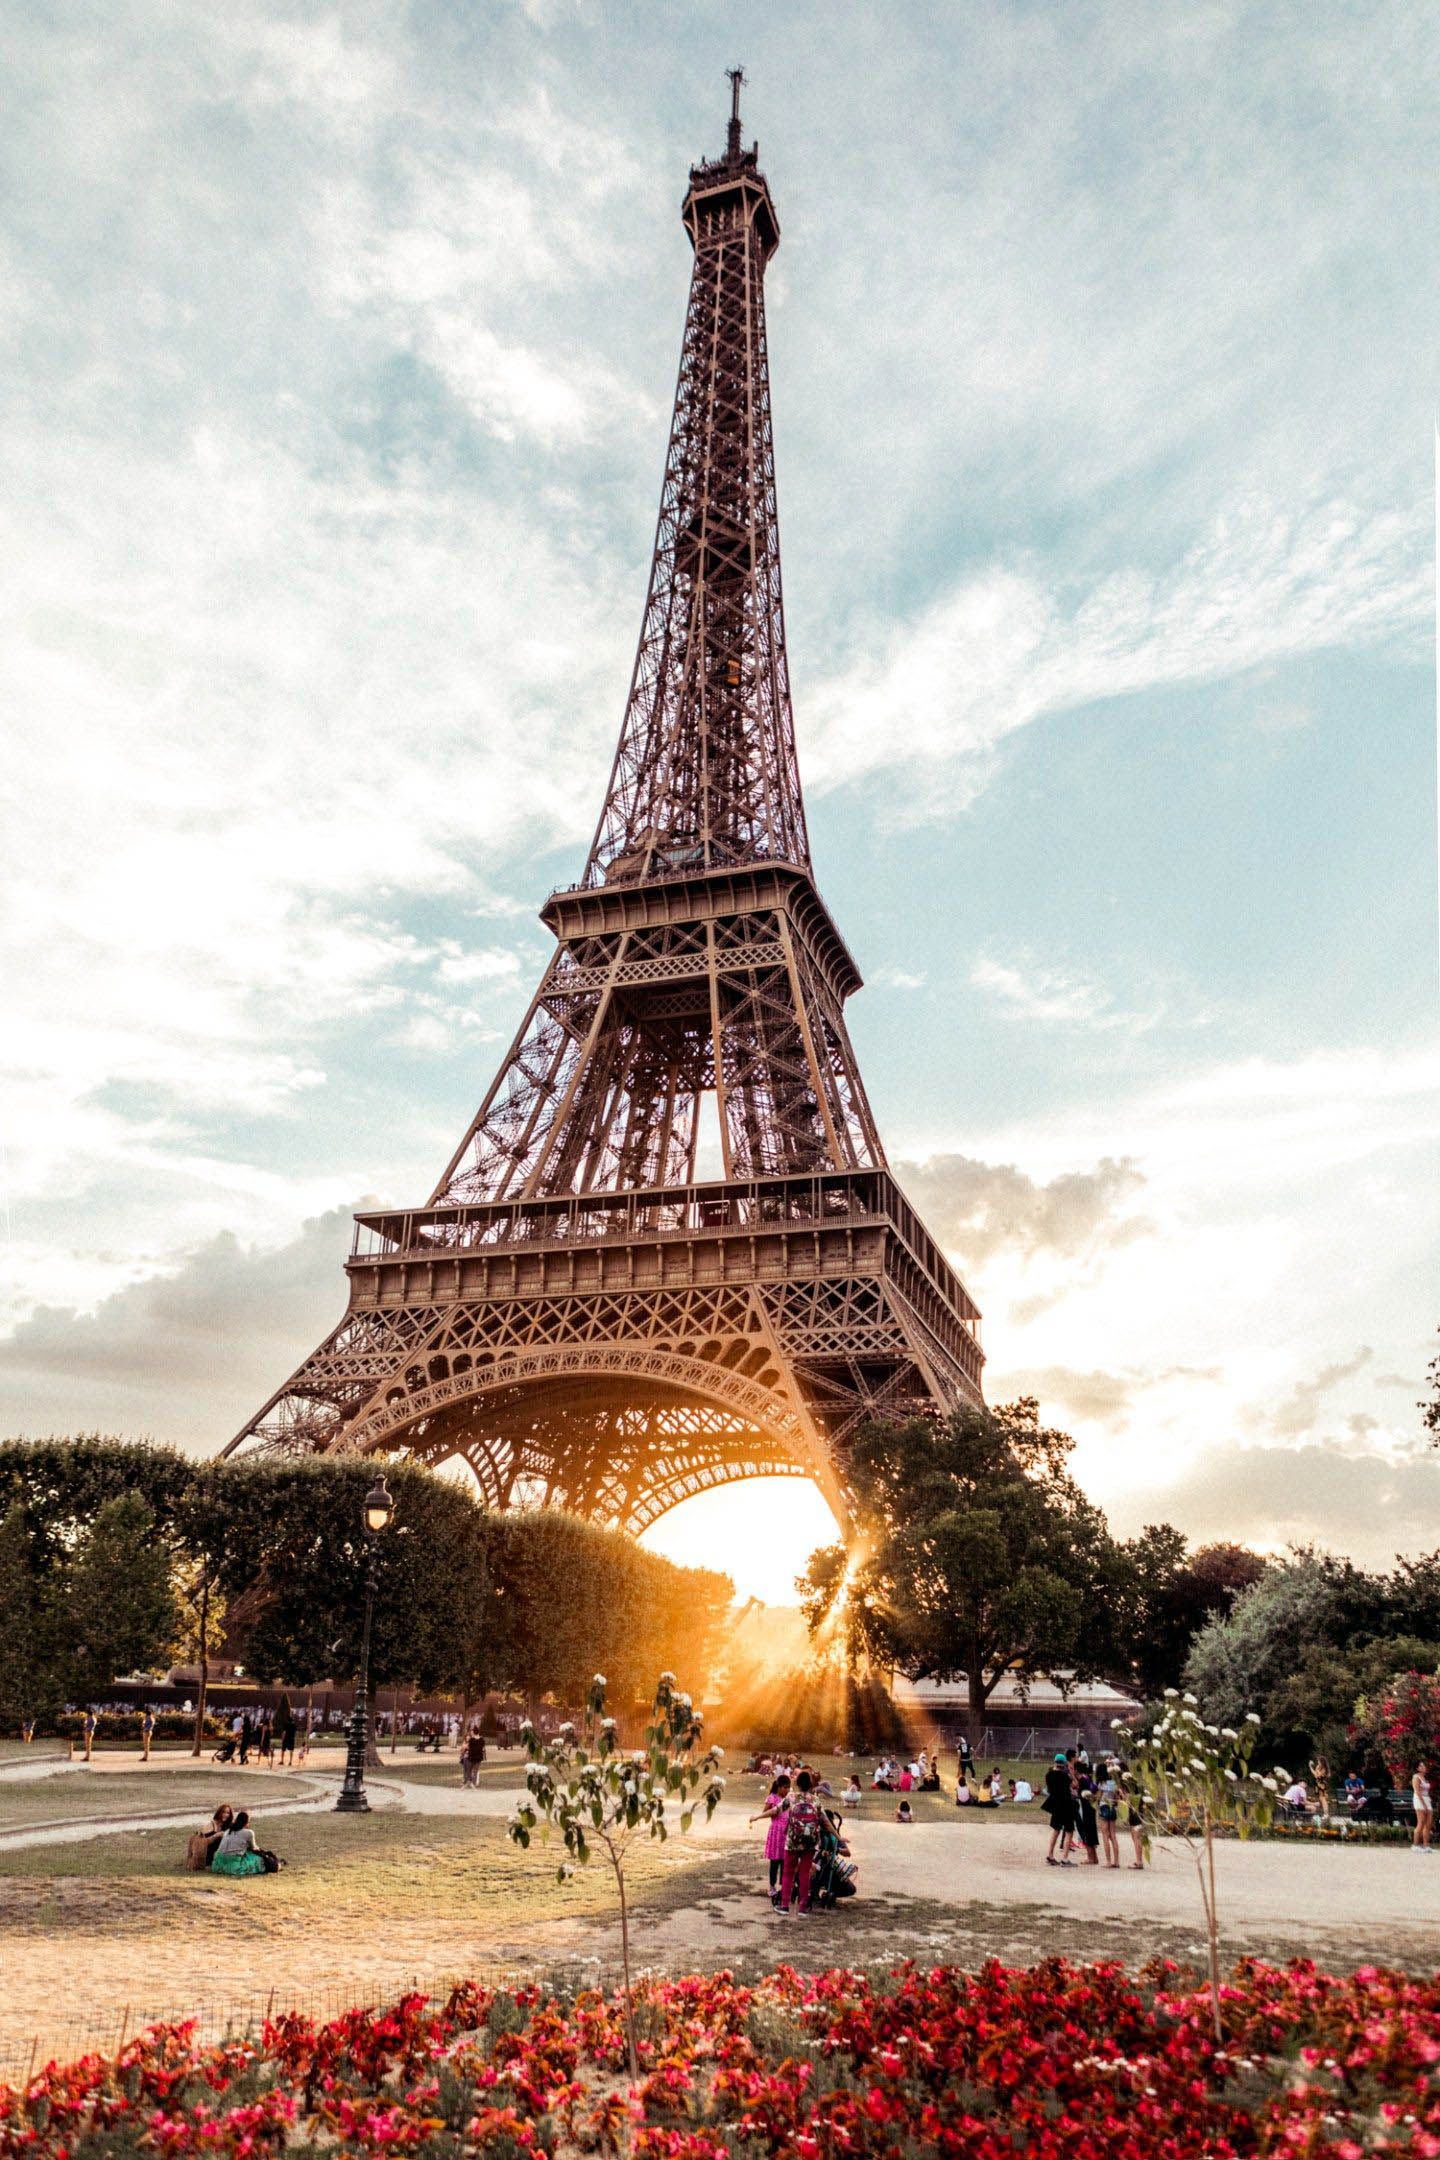 Agical Things To Do In Restaurant Near Eiffel Tower Just On Travelarize Vacations Ideas